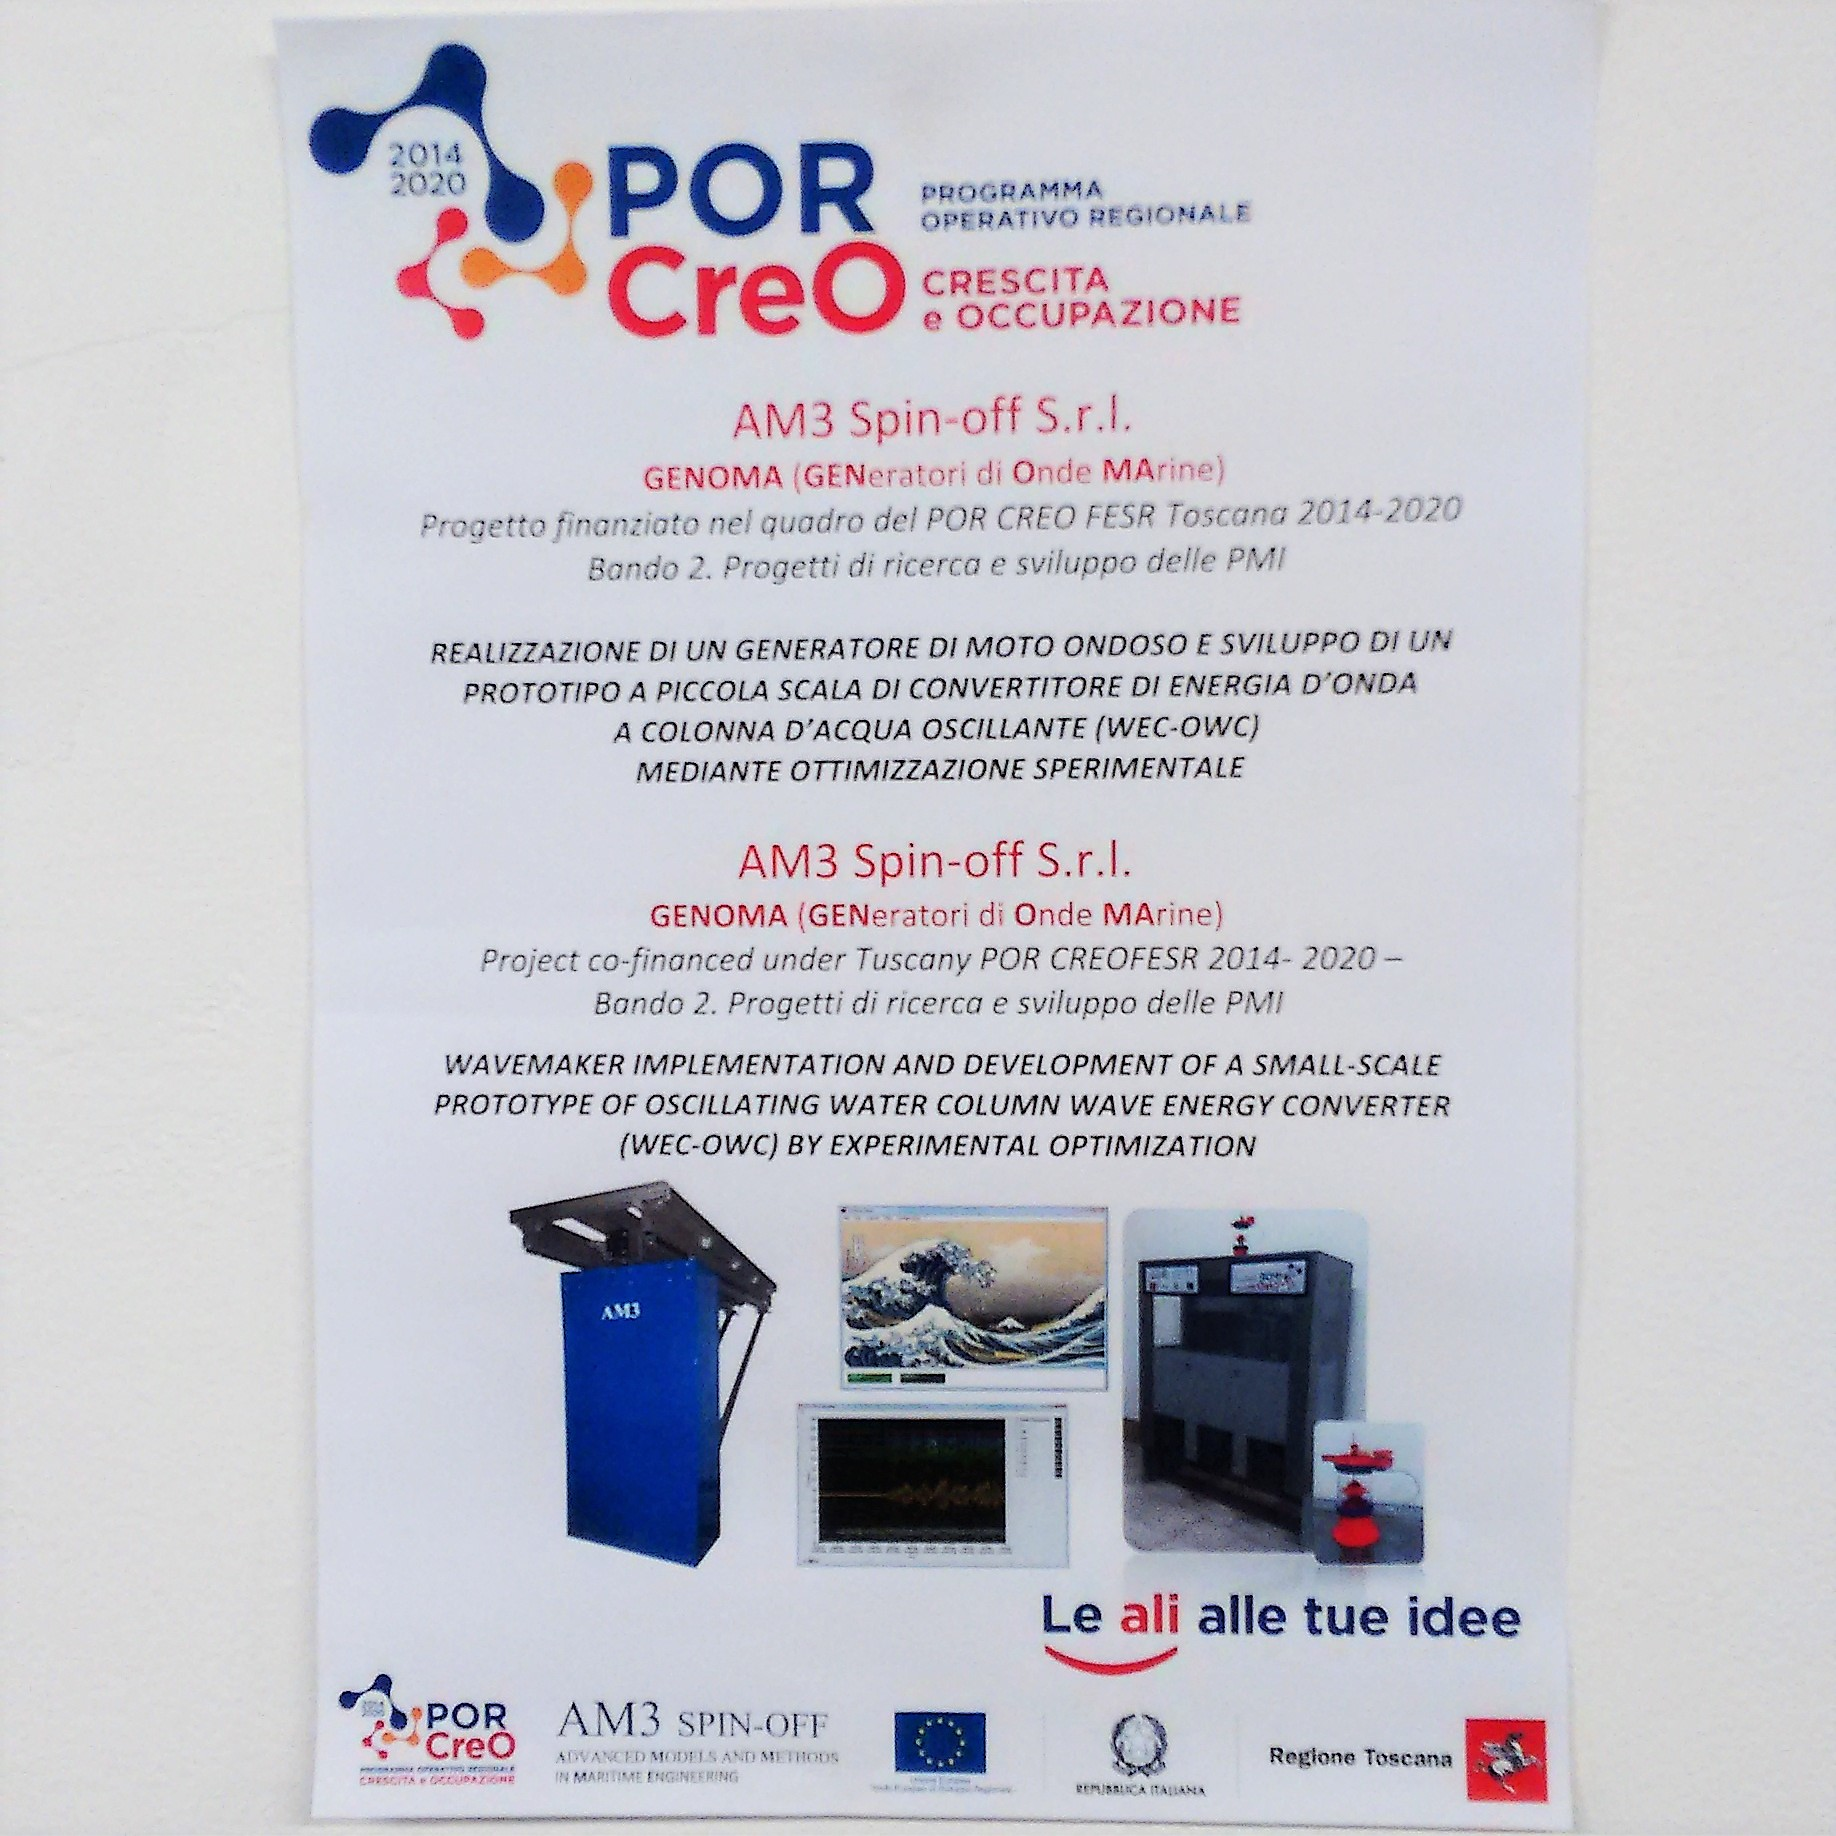 My Front Page En Am3 Spin Off Wavemaker Circuit Design Software Progetti Di Ricerca E Sviluppo Delle Pmi Implementation And Development Of A Small Scale Prototype Oscillating Water Column Wave Energy